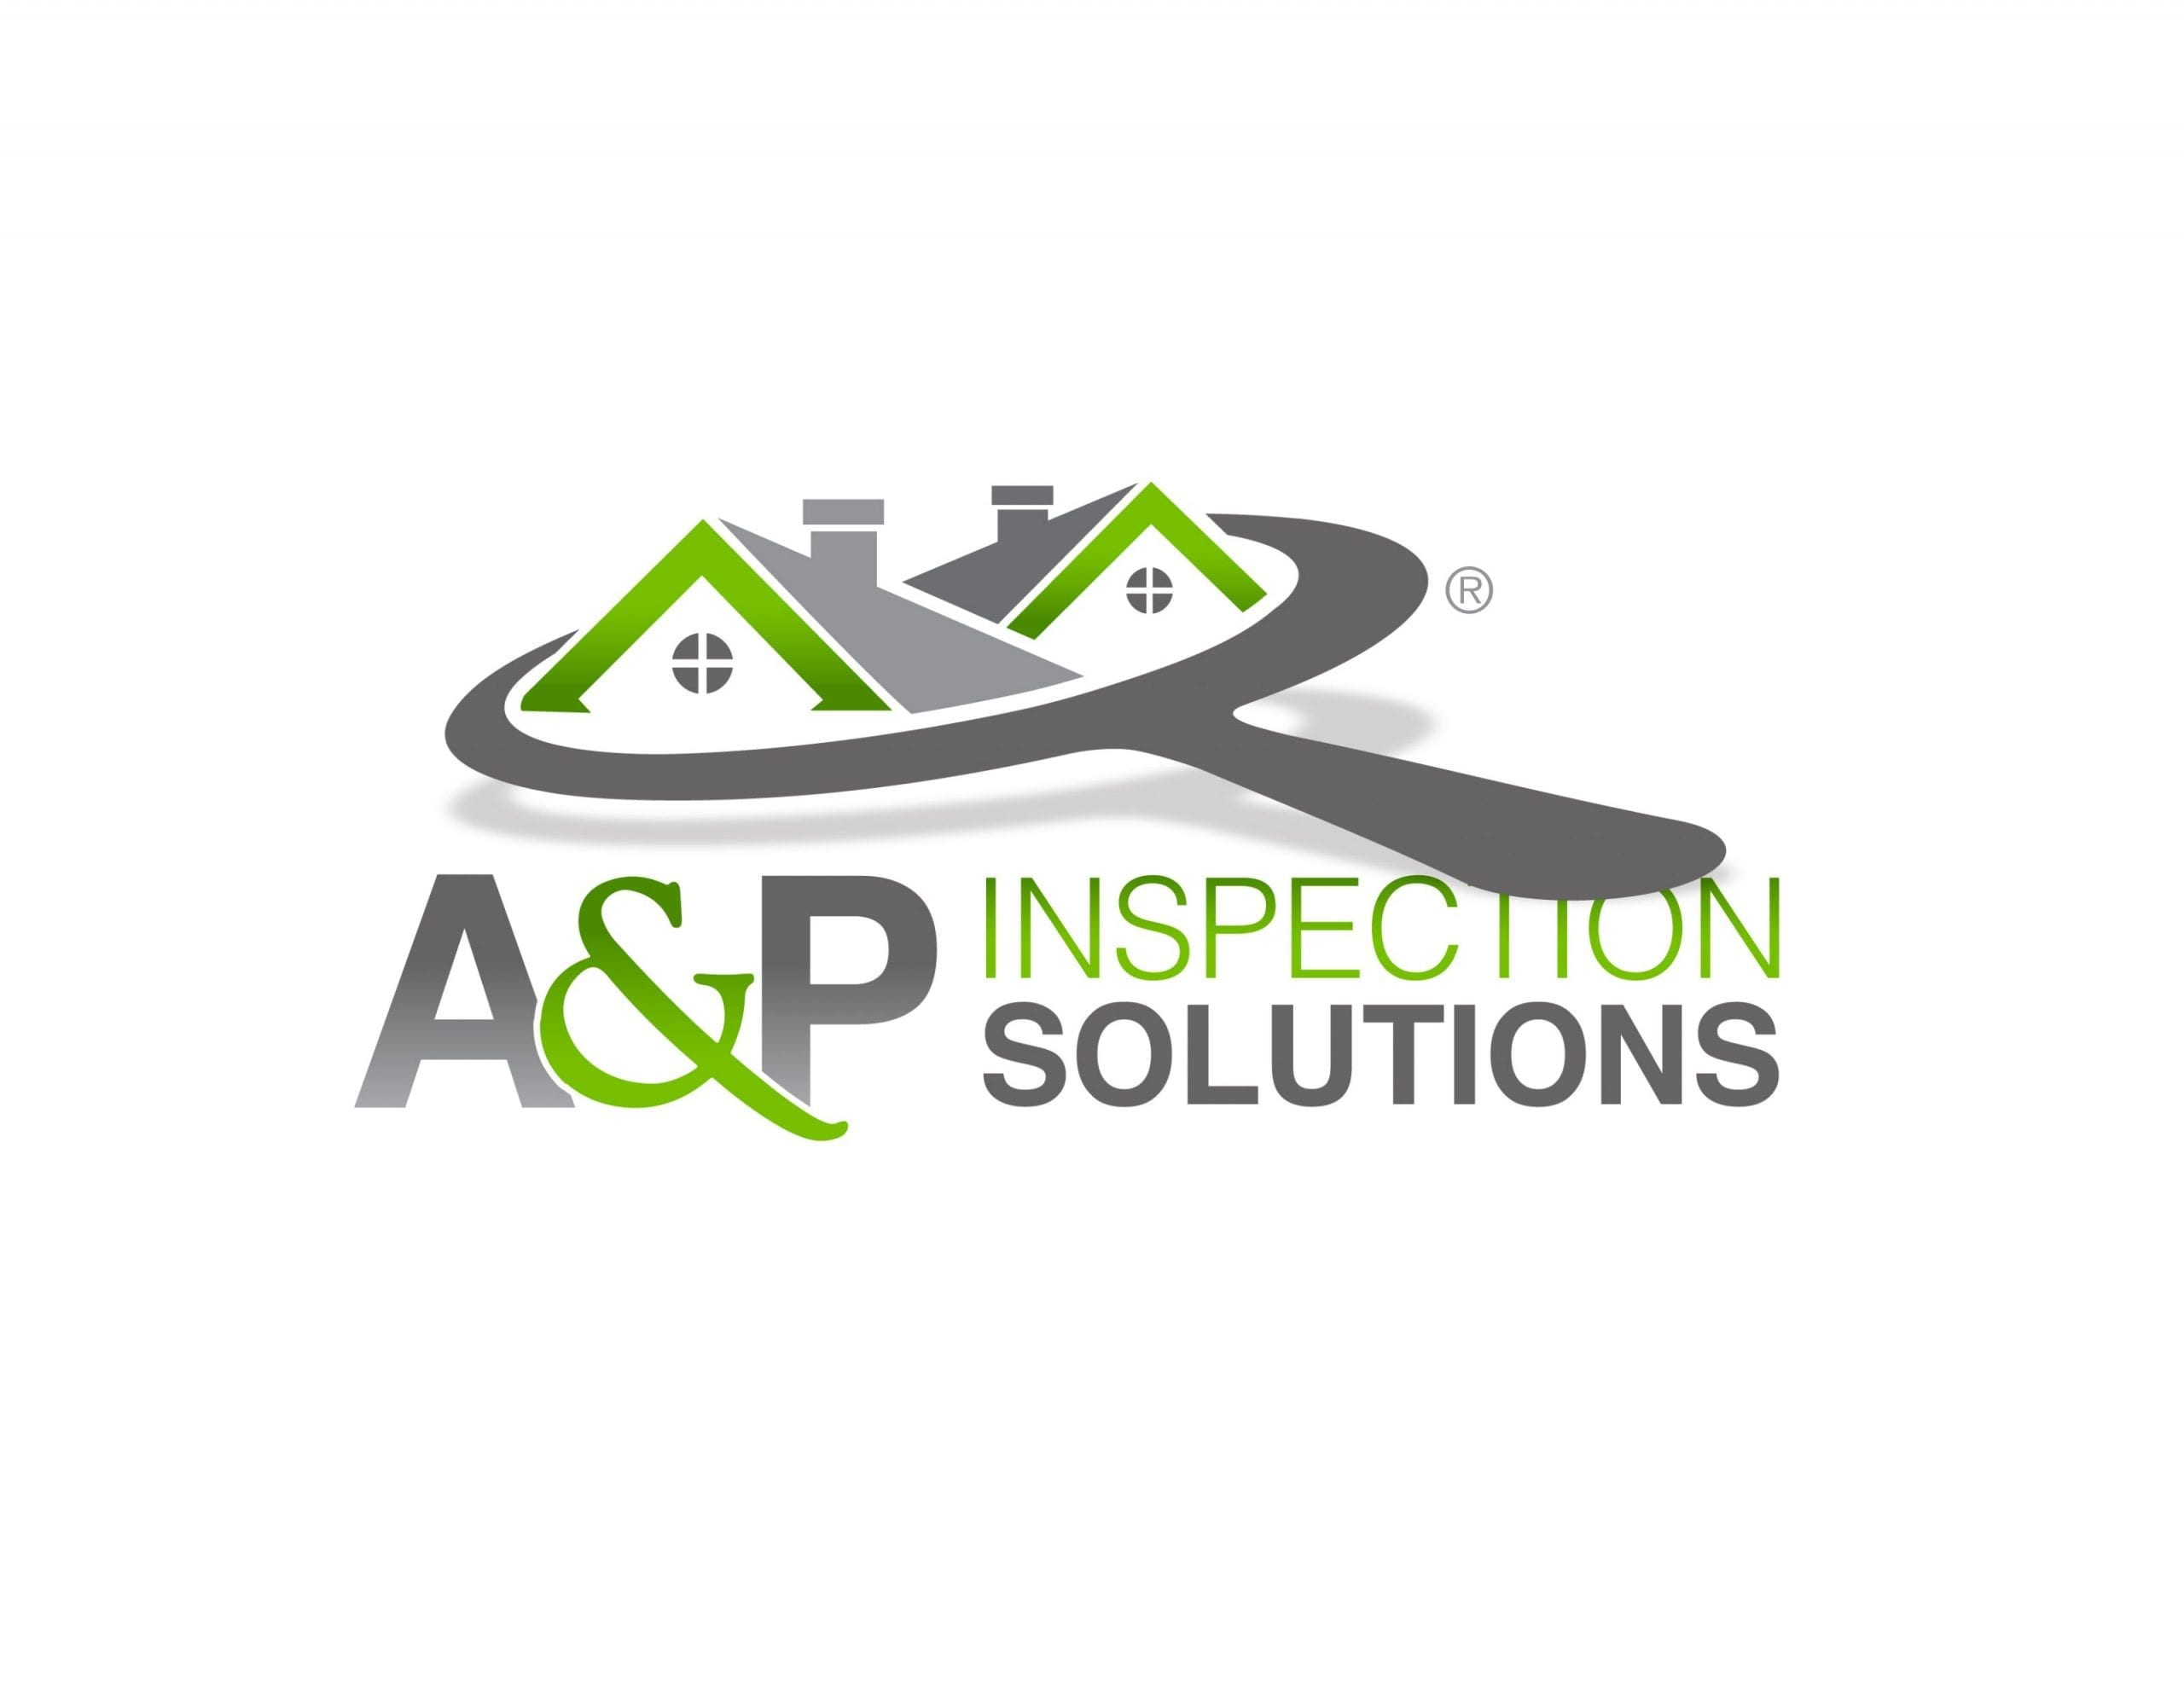 A&P inspection Solutions